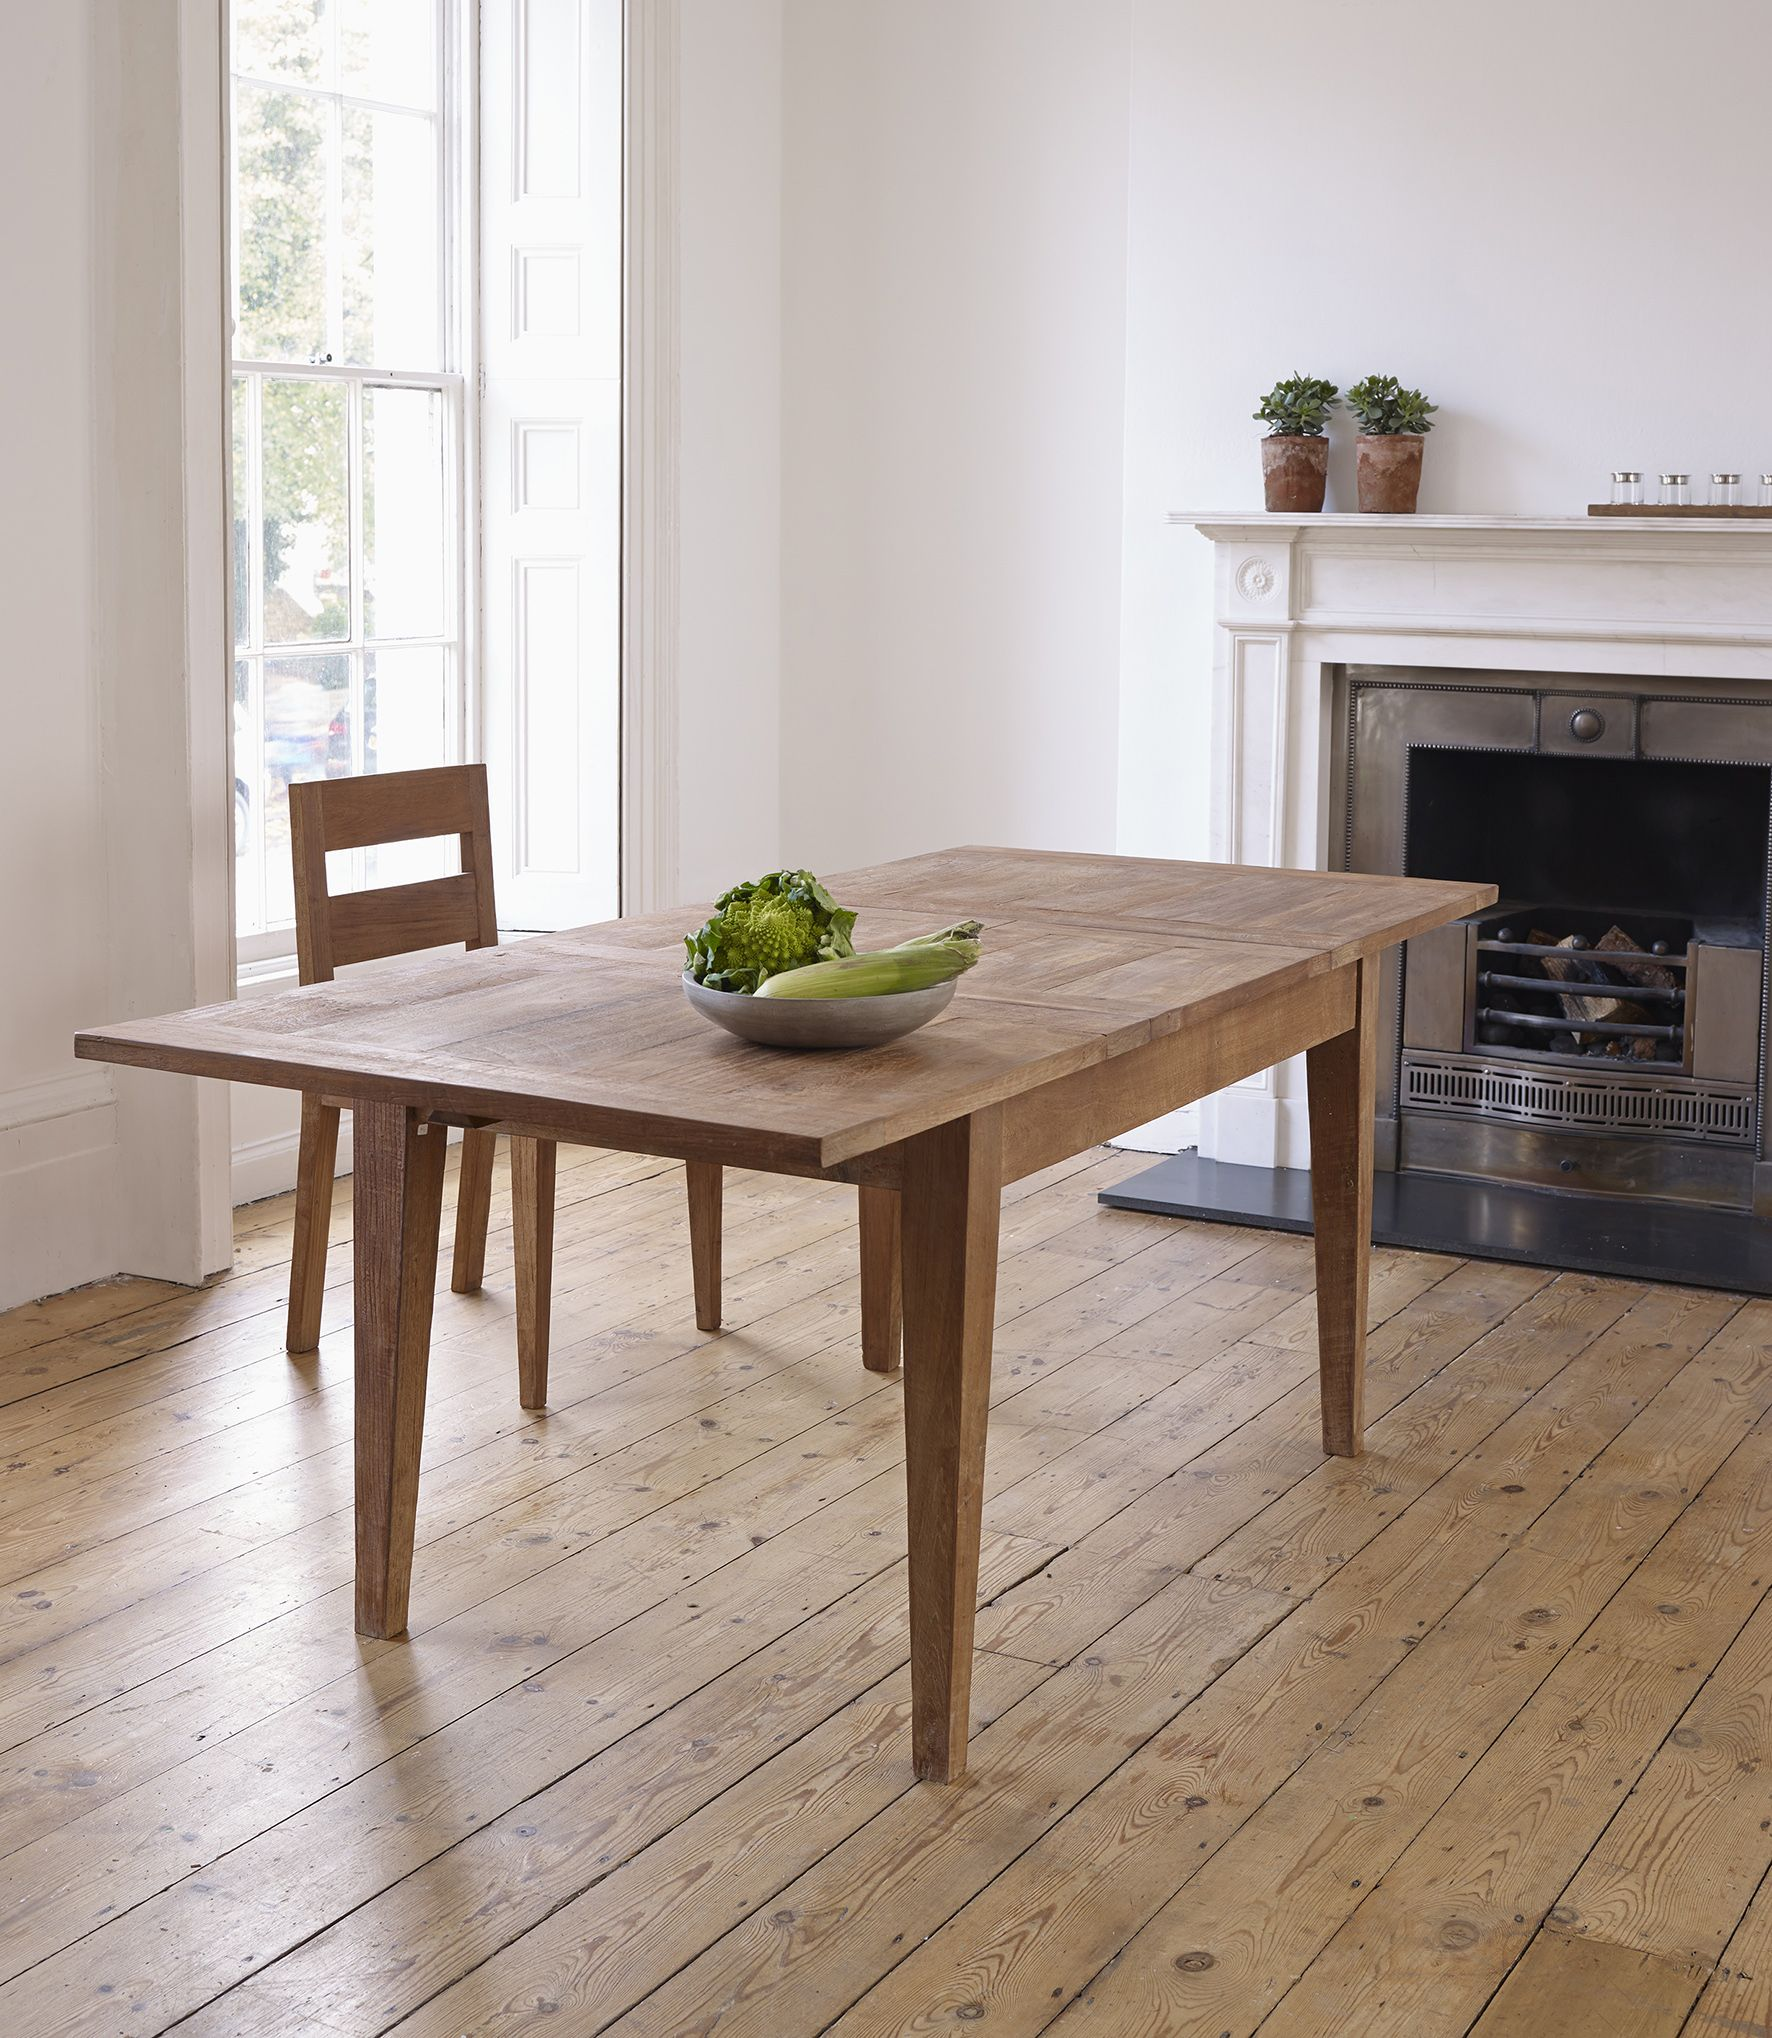 Our Sumatra Dining Tables Are Handmade In Indonesia From Reclaimed